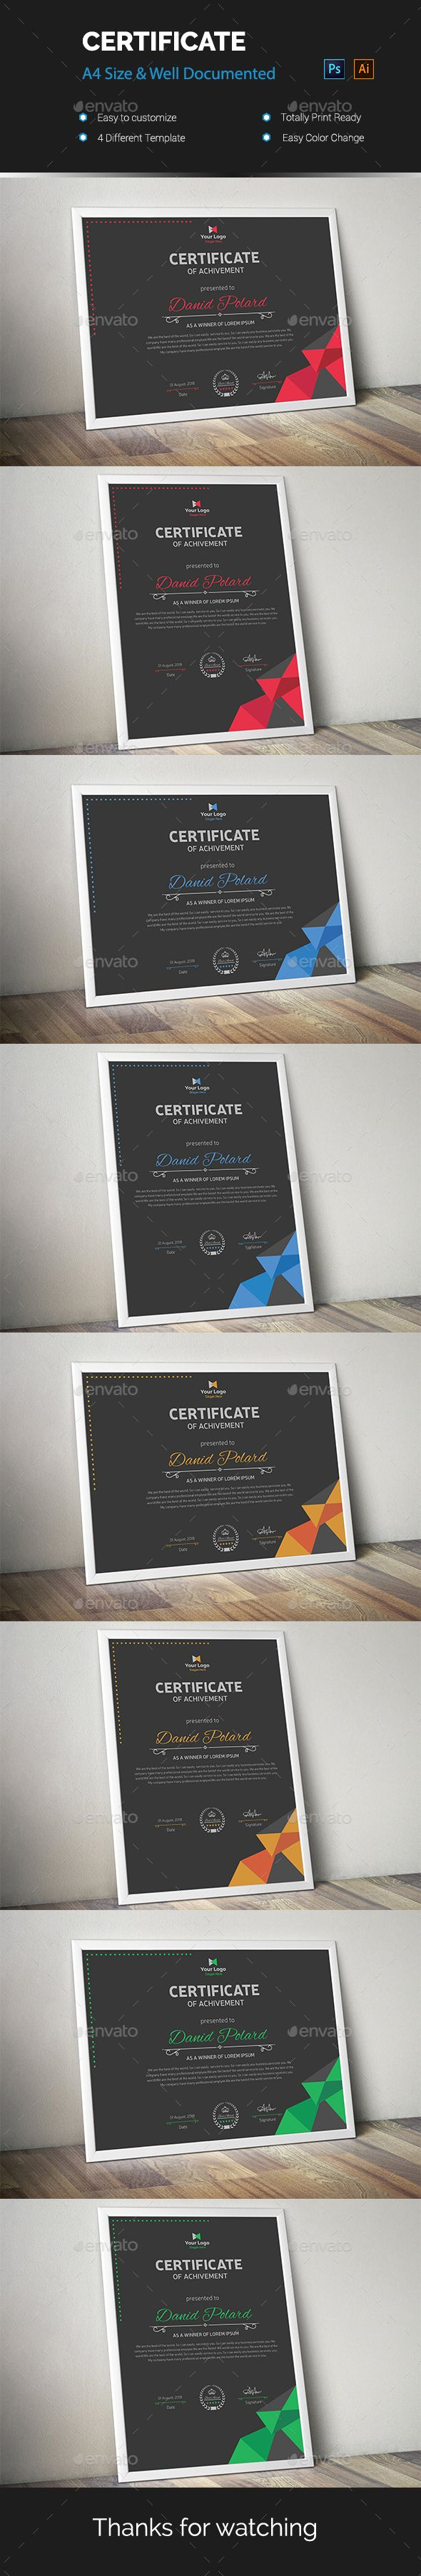 Certificate #print #modern  • Download here → https://graphicriver.net/item/certificate/20876763?ref=pxcr